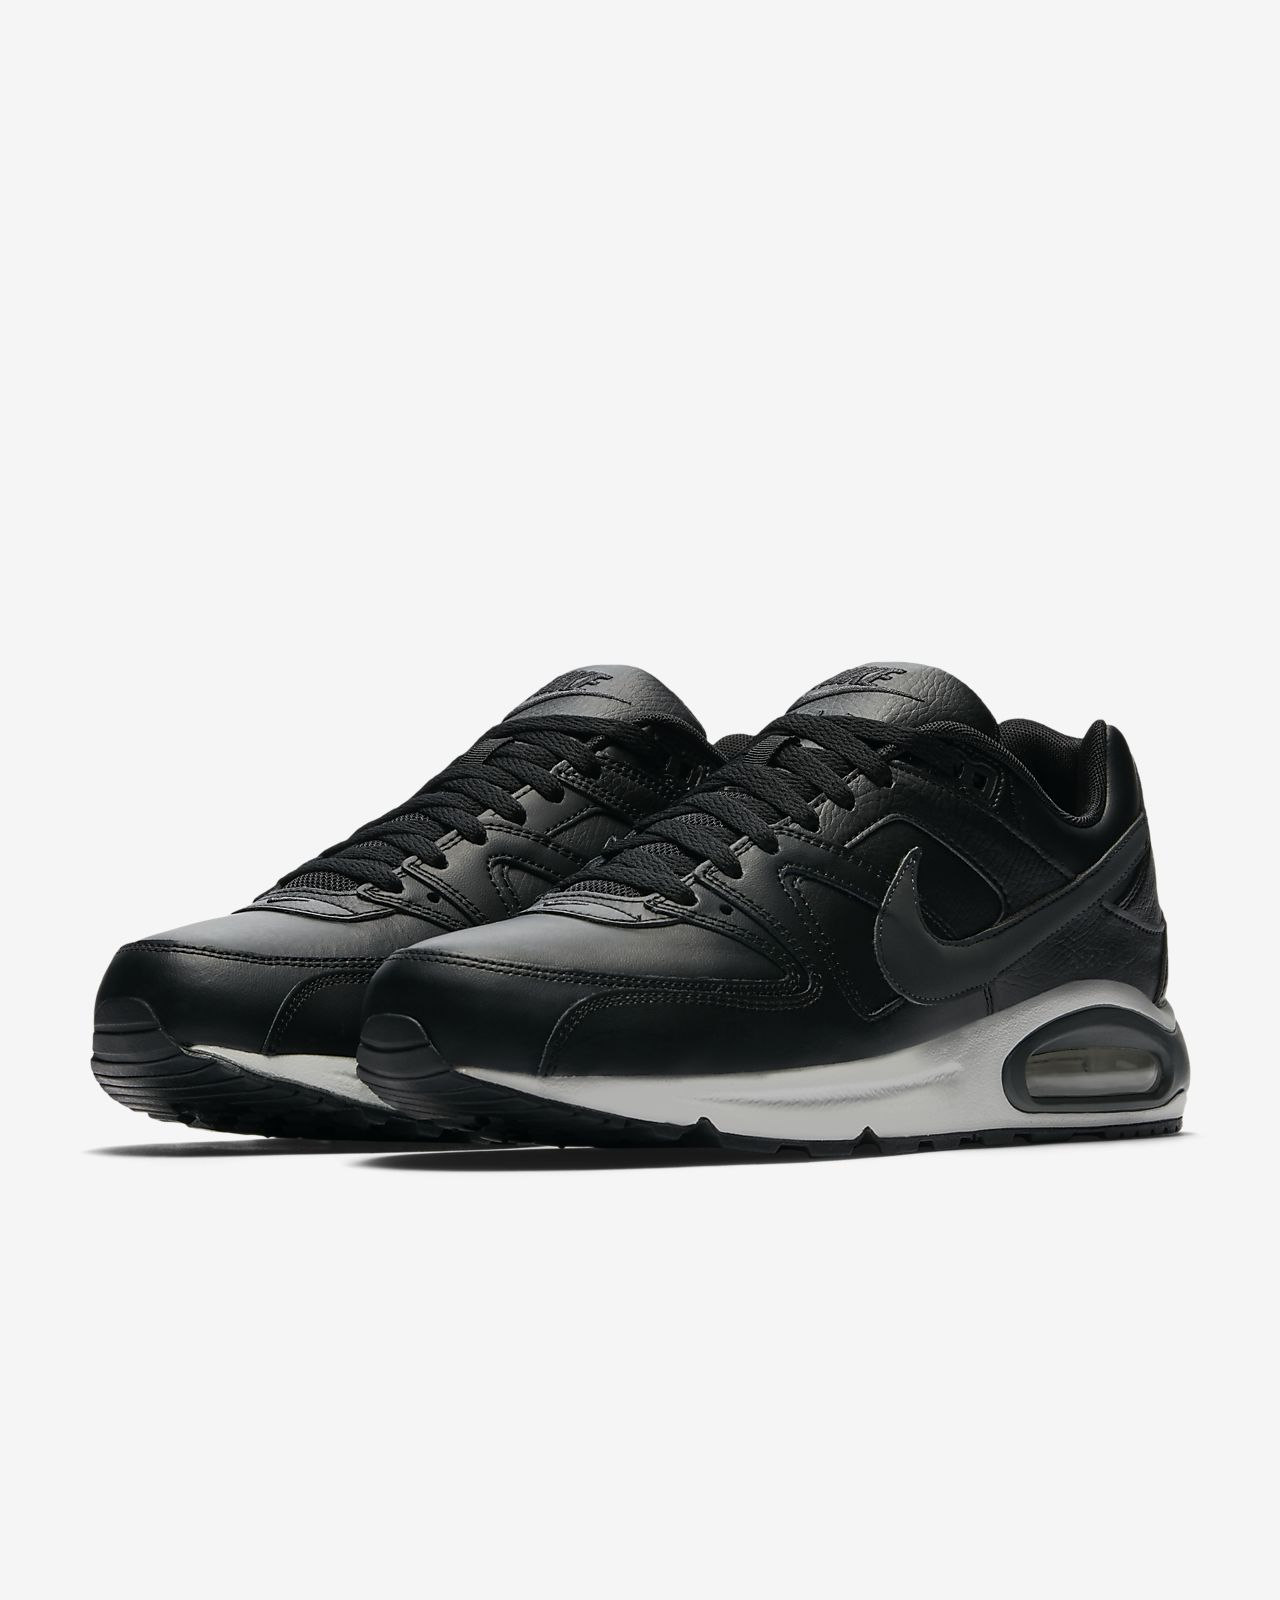 Nike Air Max Command Leather Men's Shoe wolf greymetallic dark greyblackwhite 749760 012